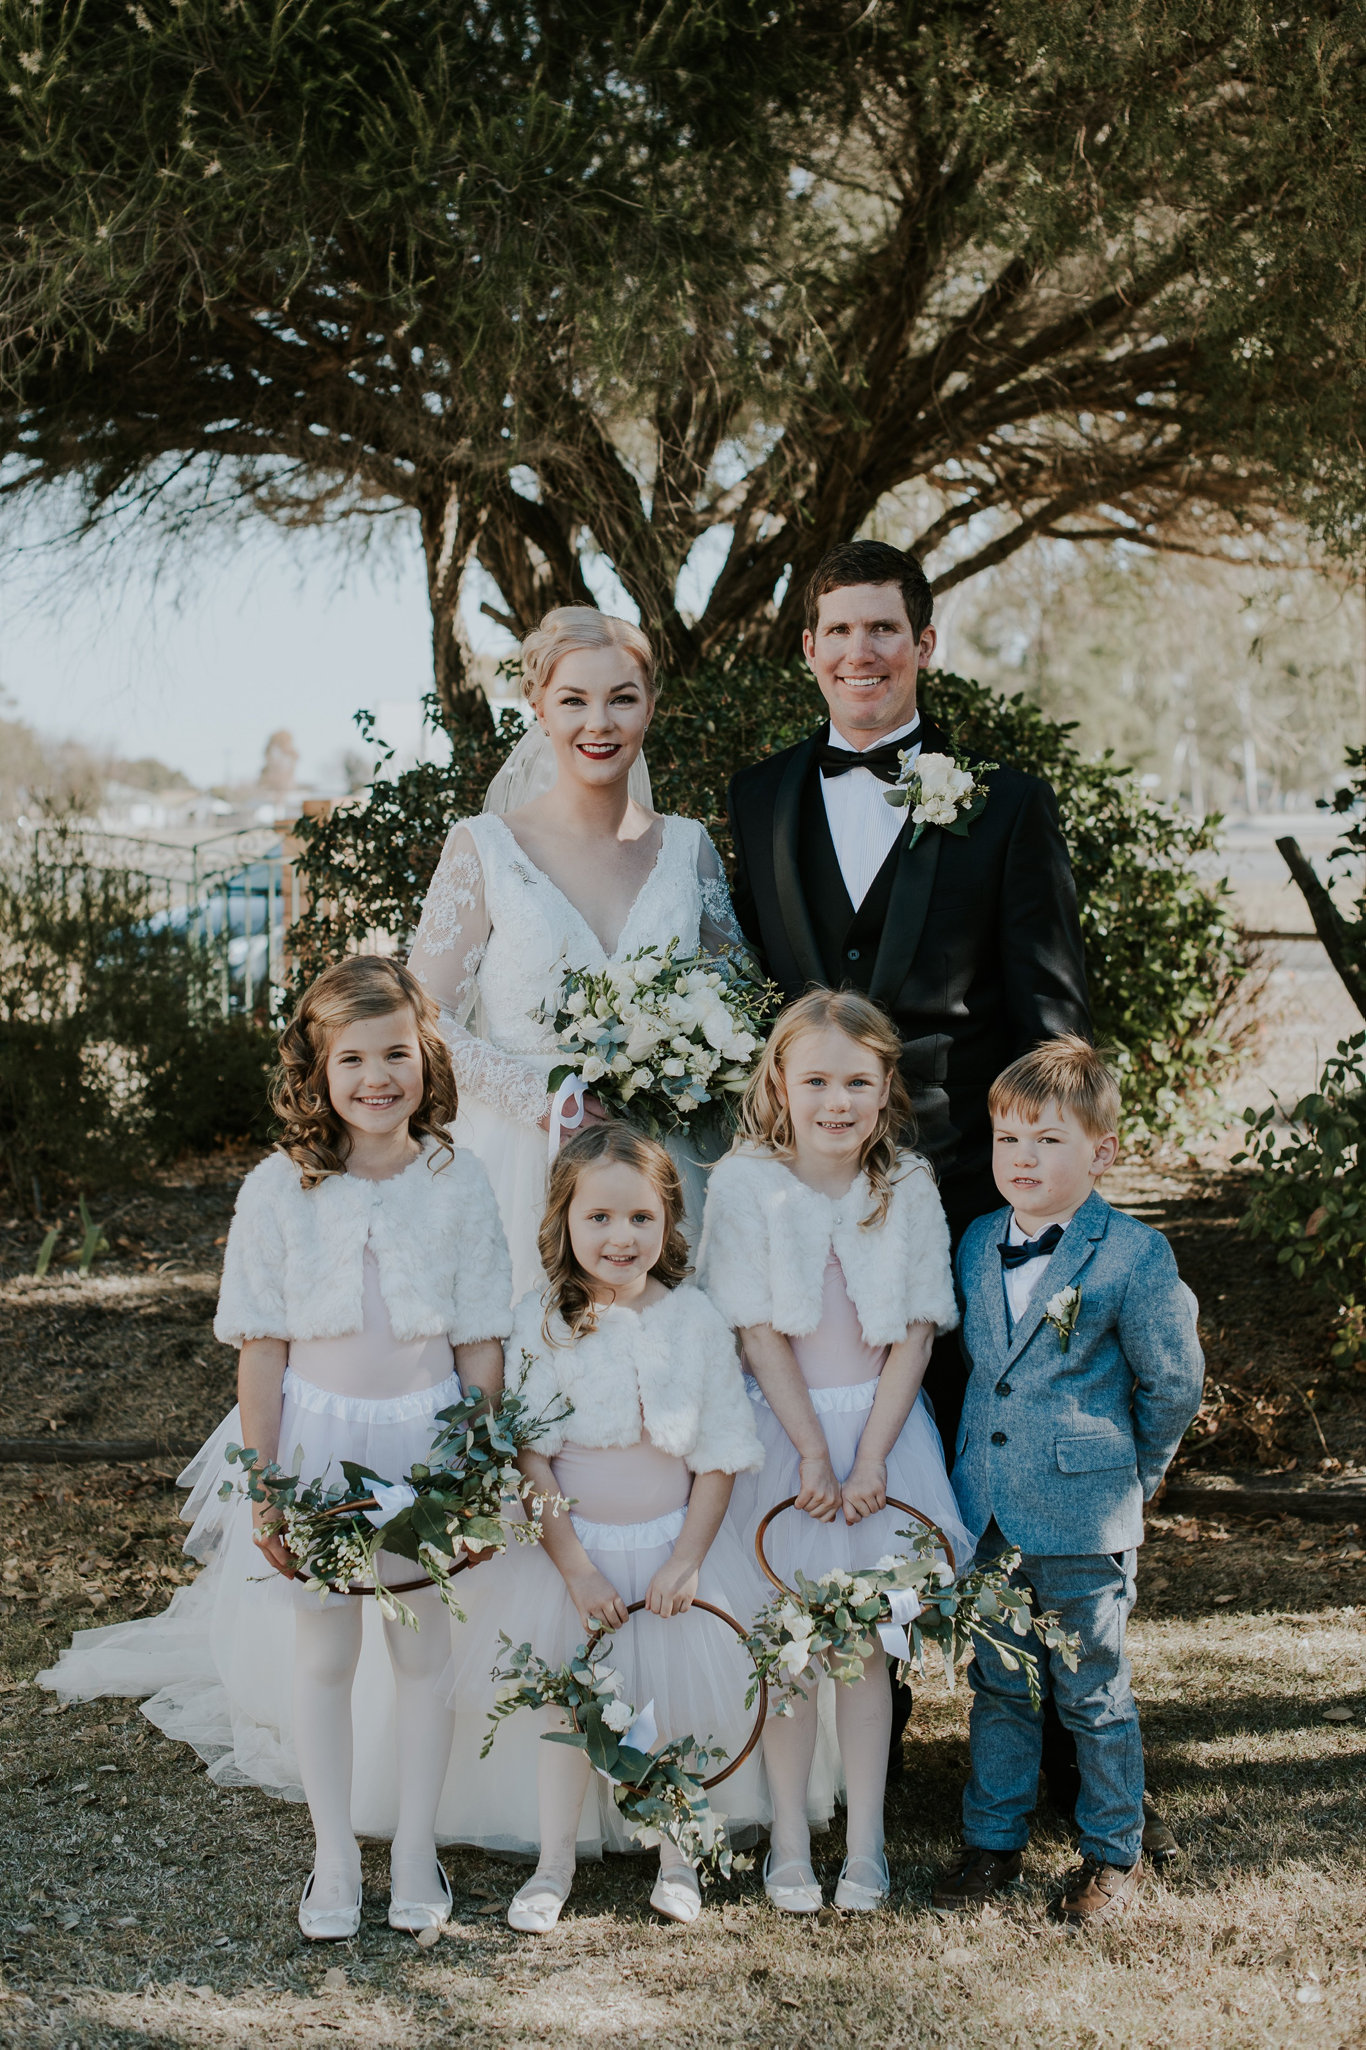 After 10 years together, Lydia Patterson and Trent Woods finally tied the knot at the heritage-listed St David's Anglican Church in Allora on July 20.